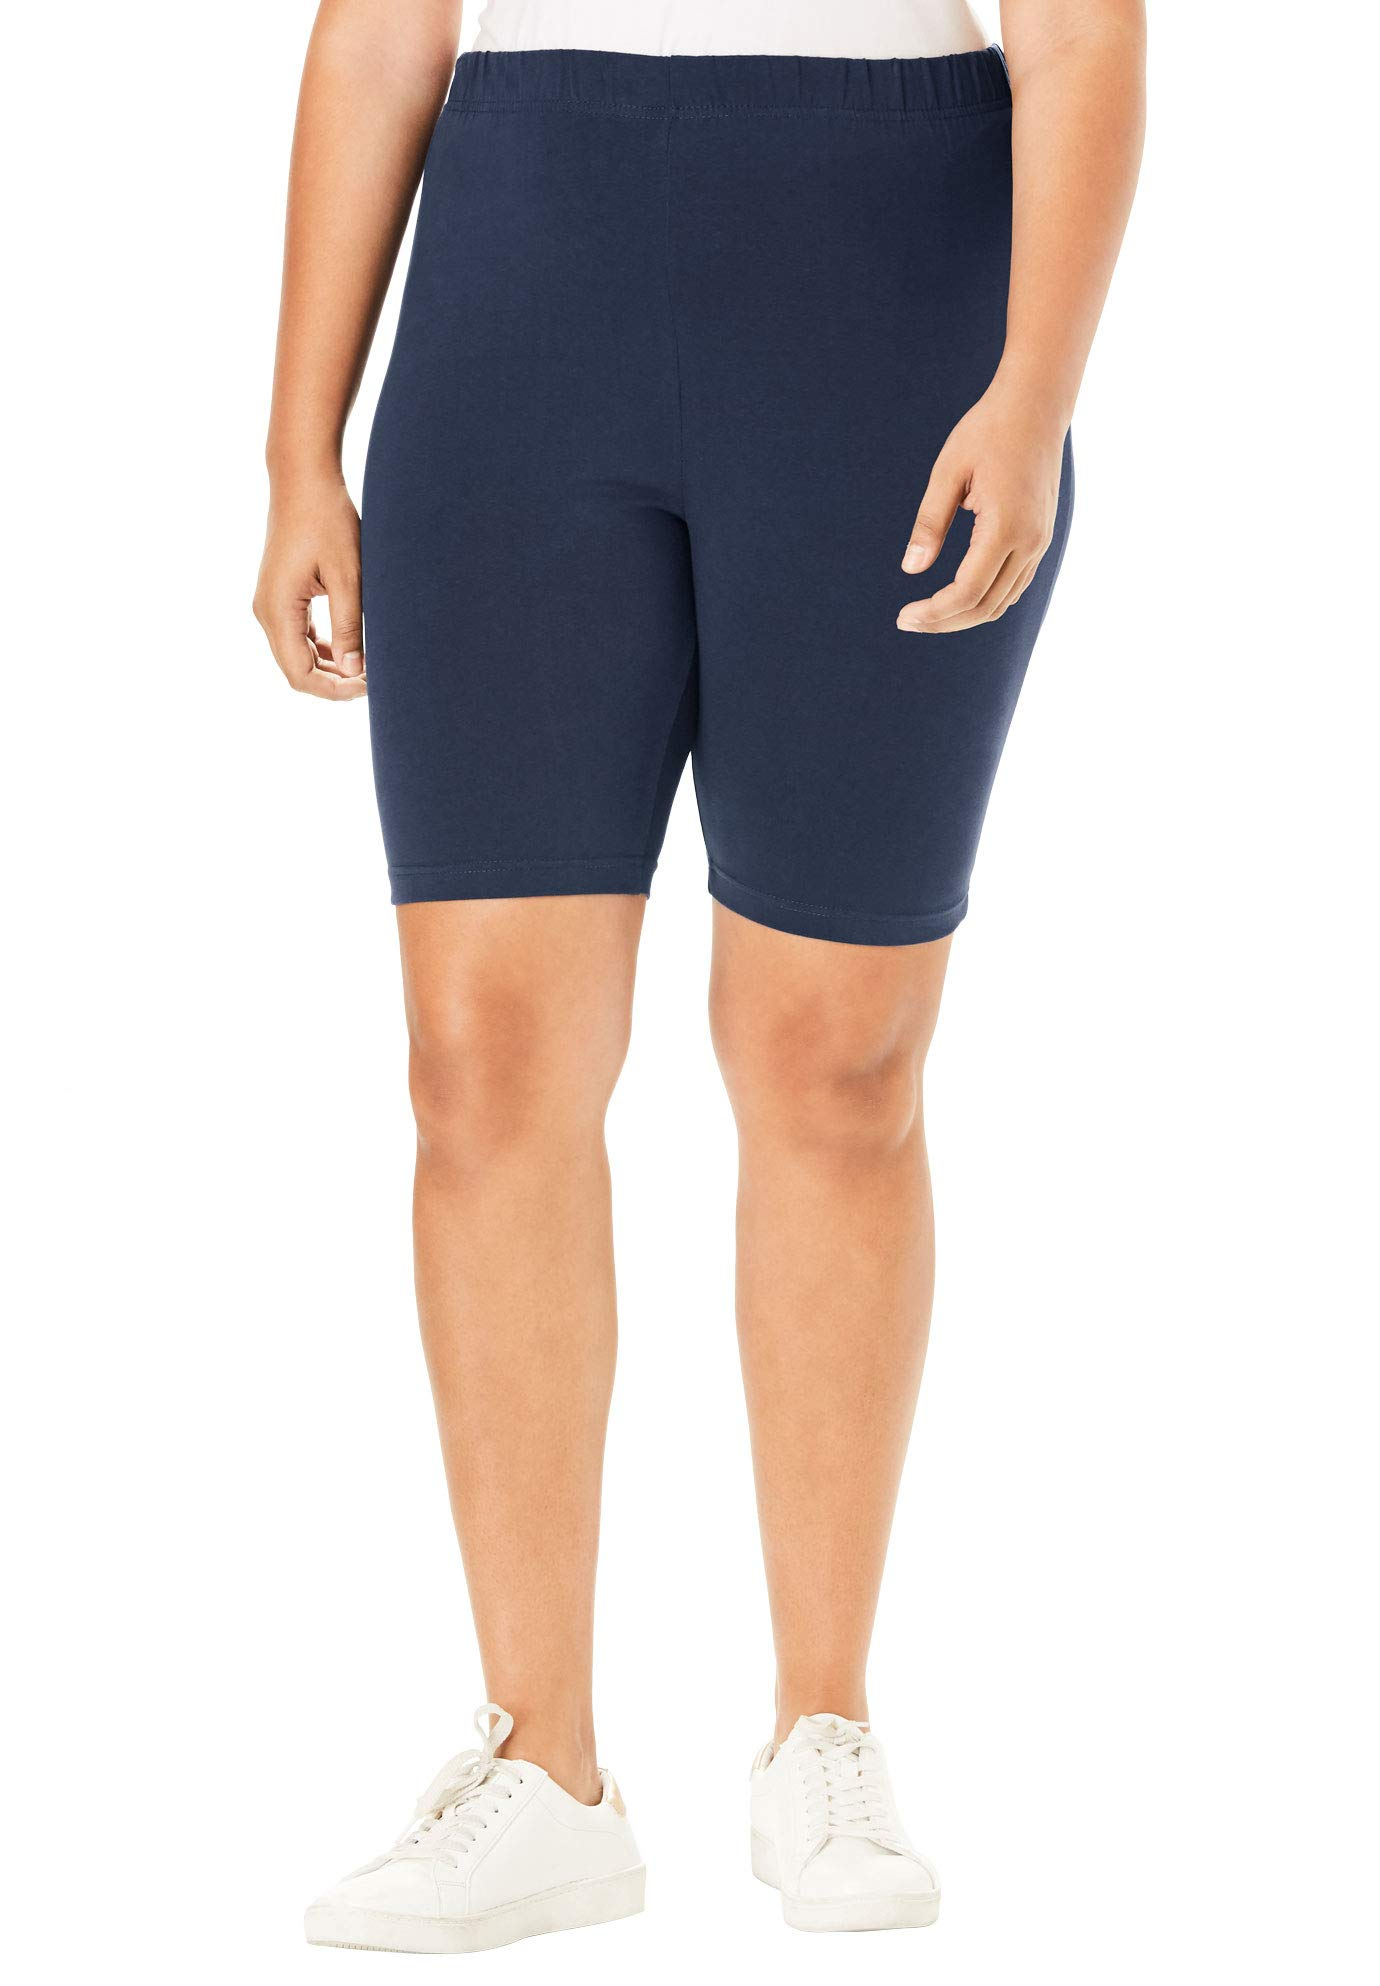 Roamans Women's Plus Size Essential Stretch Bike Short - Navy, 4X by Roamans